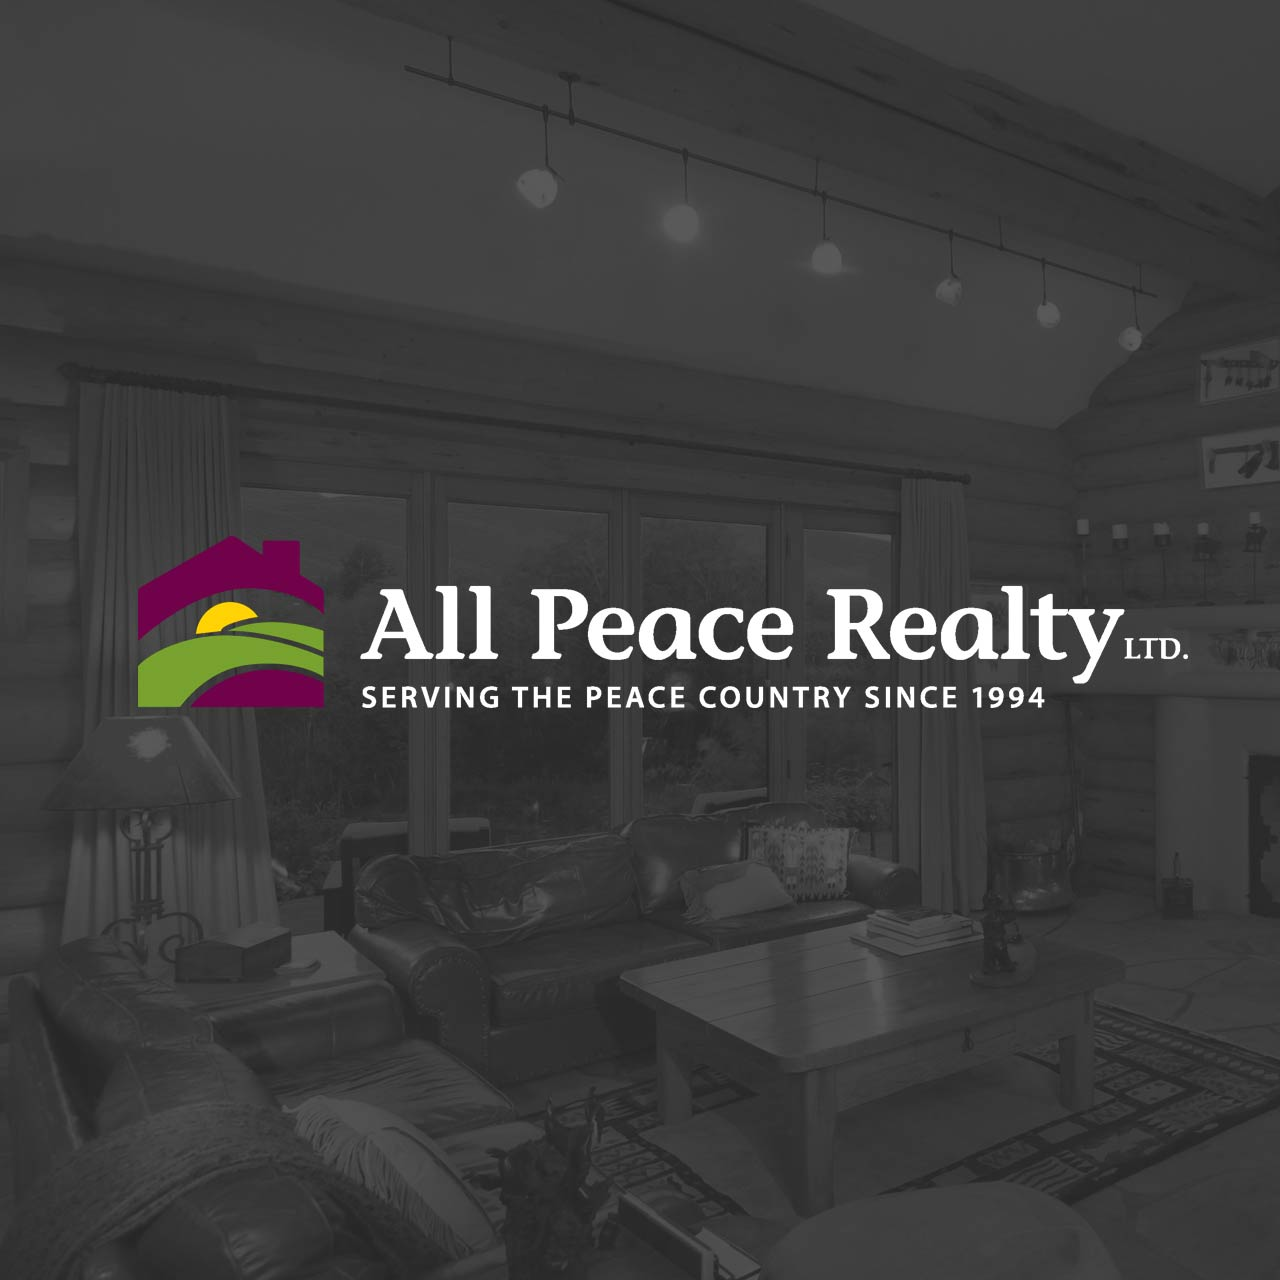 Case Study For All Peace Realty